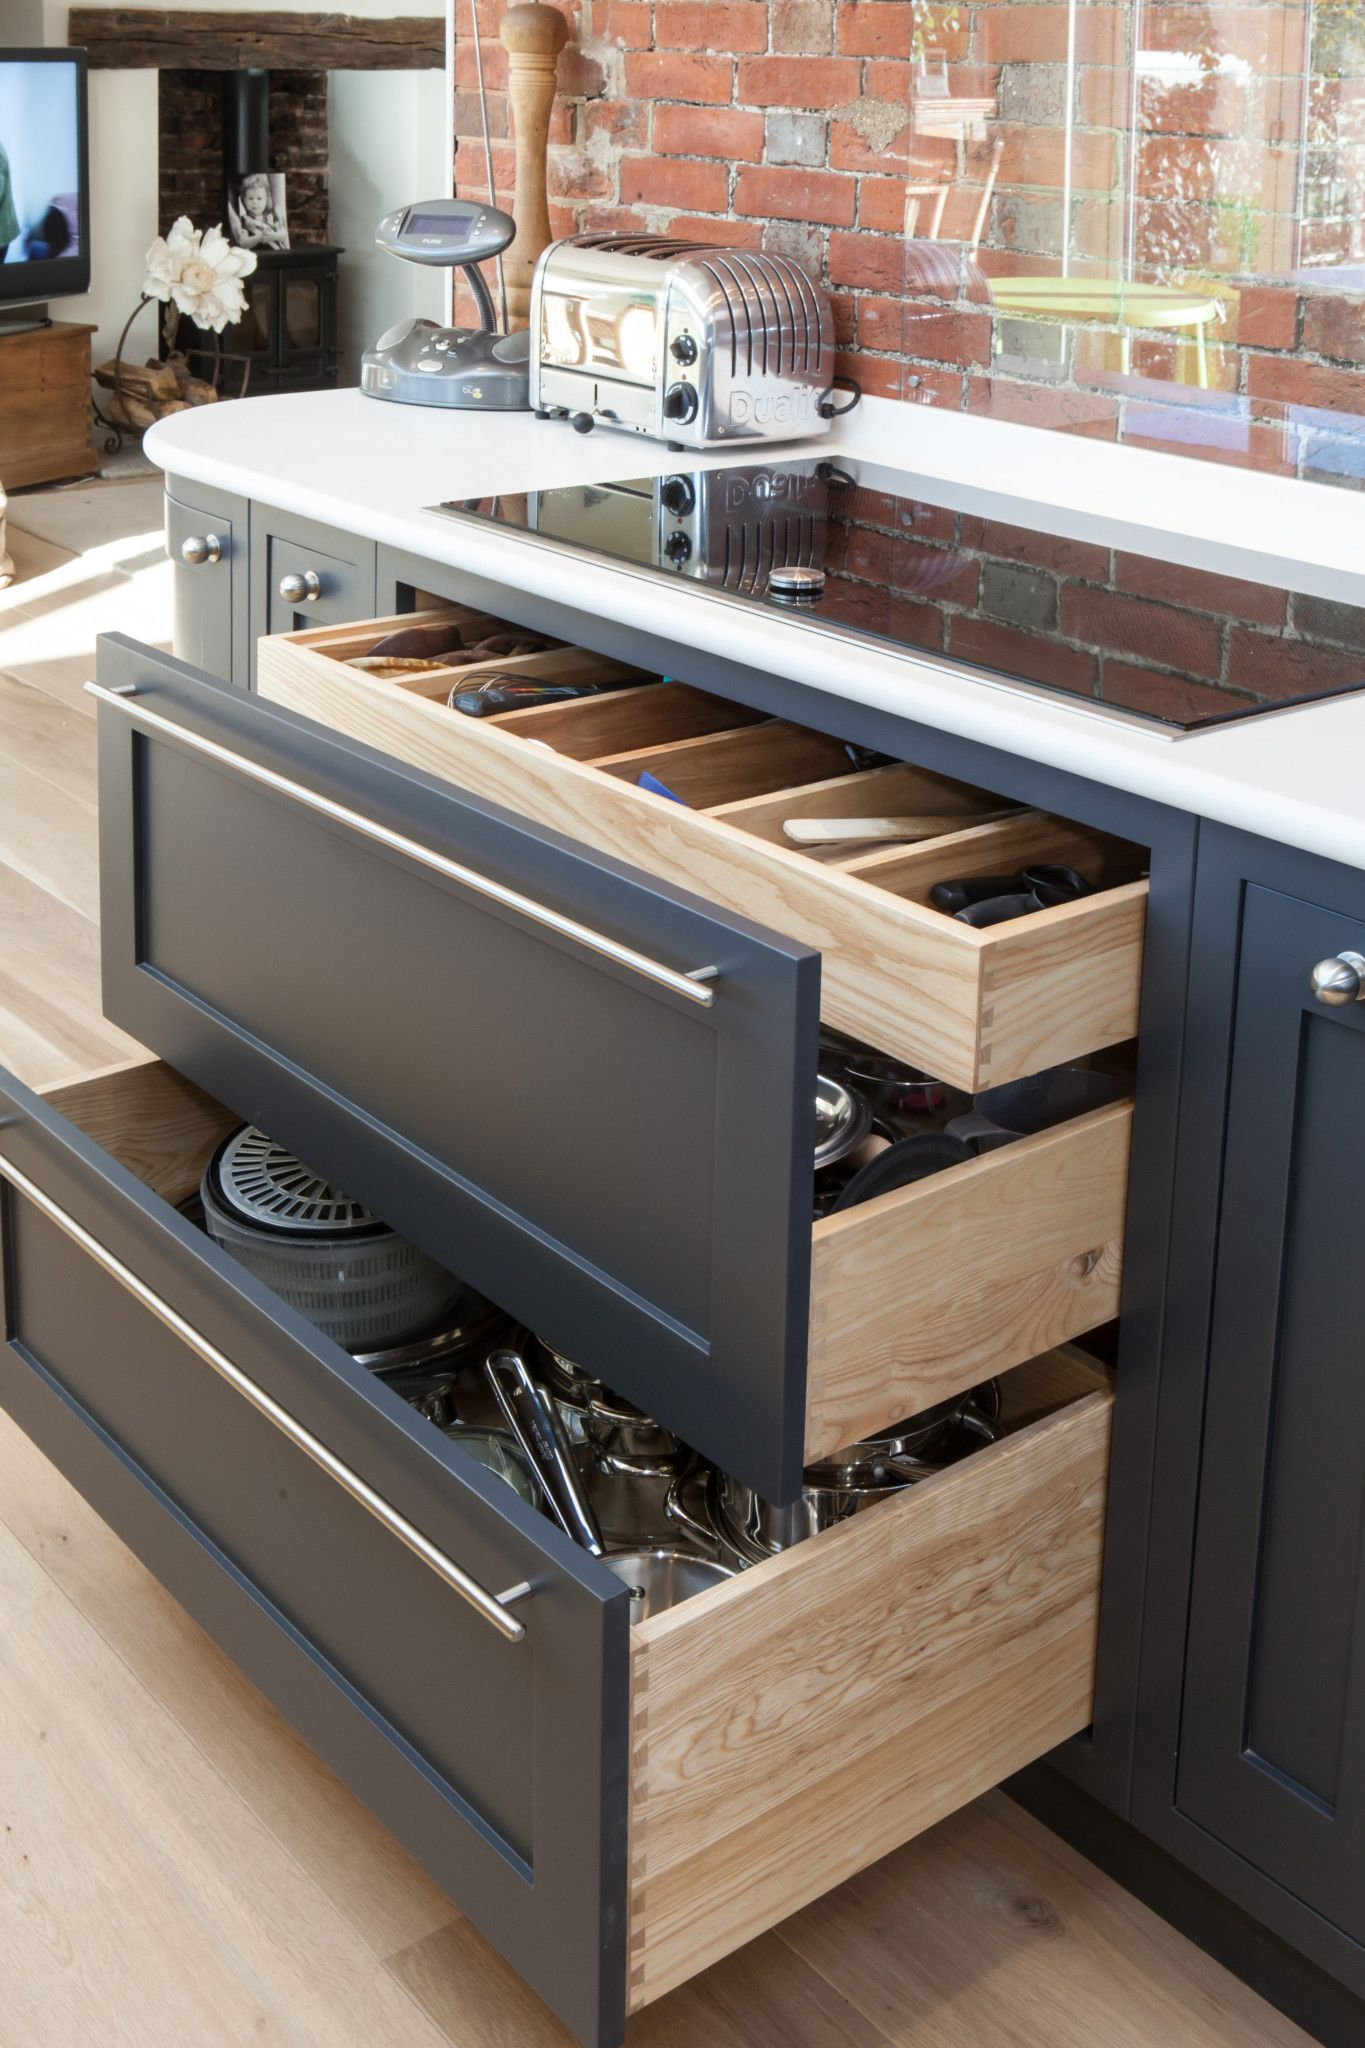 Bespoke Wooden, Timber & Oak Fitted Kitchens in